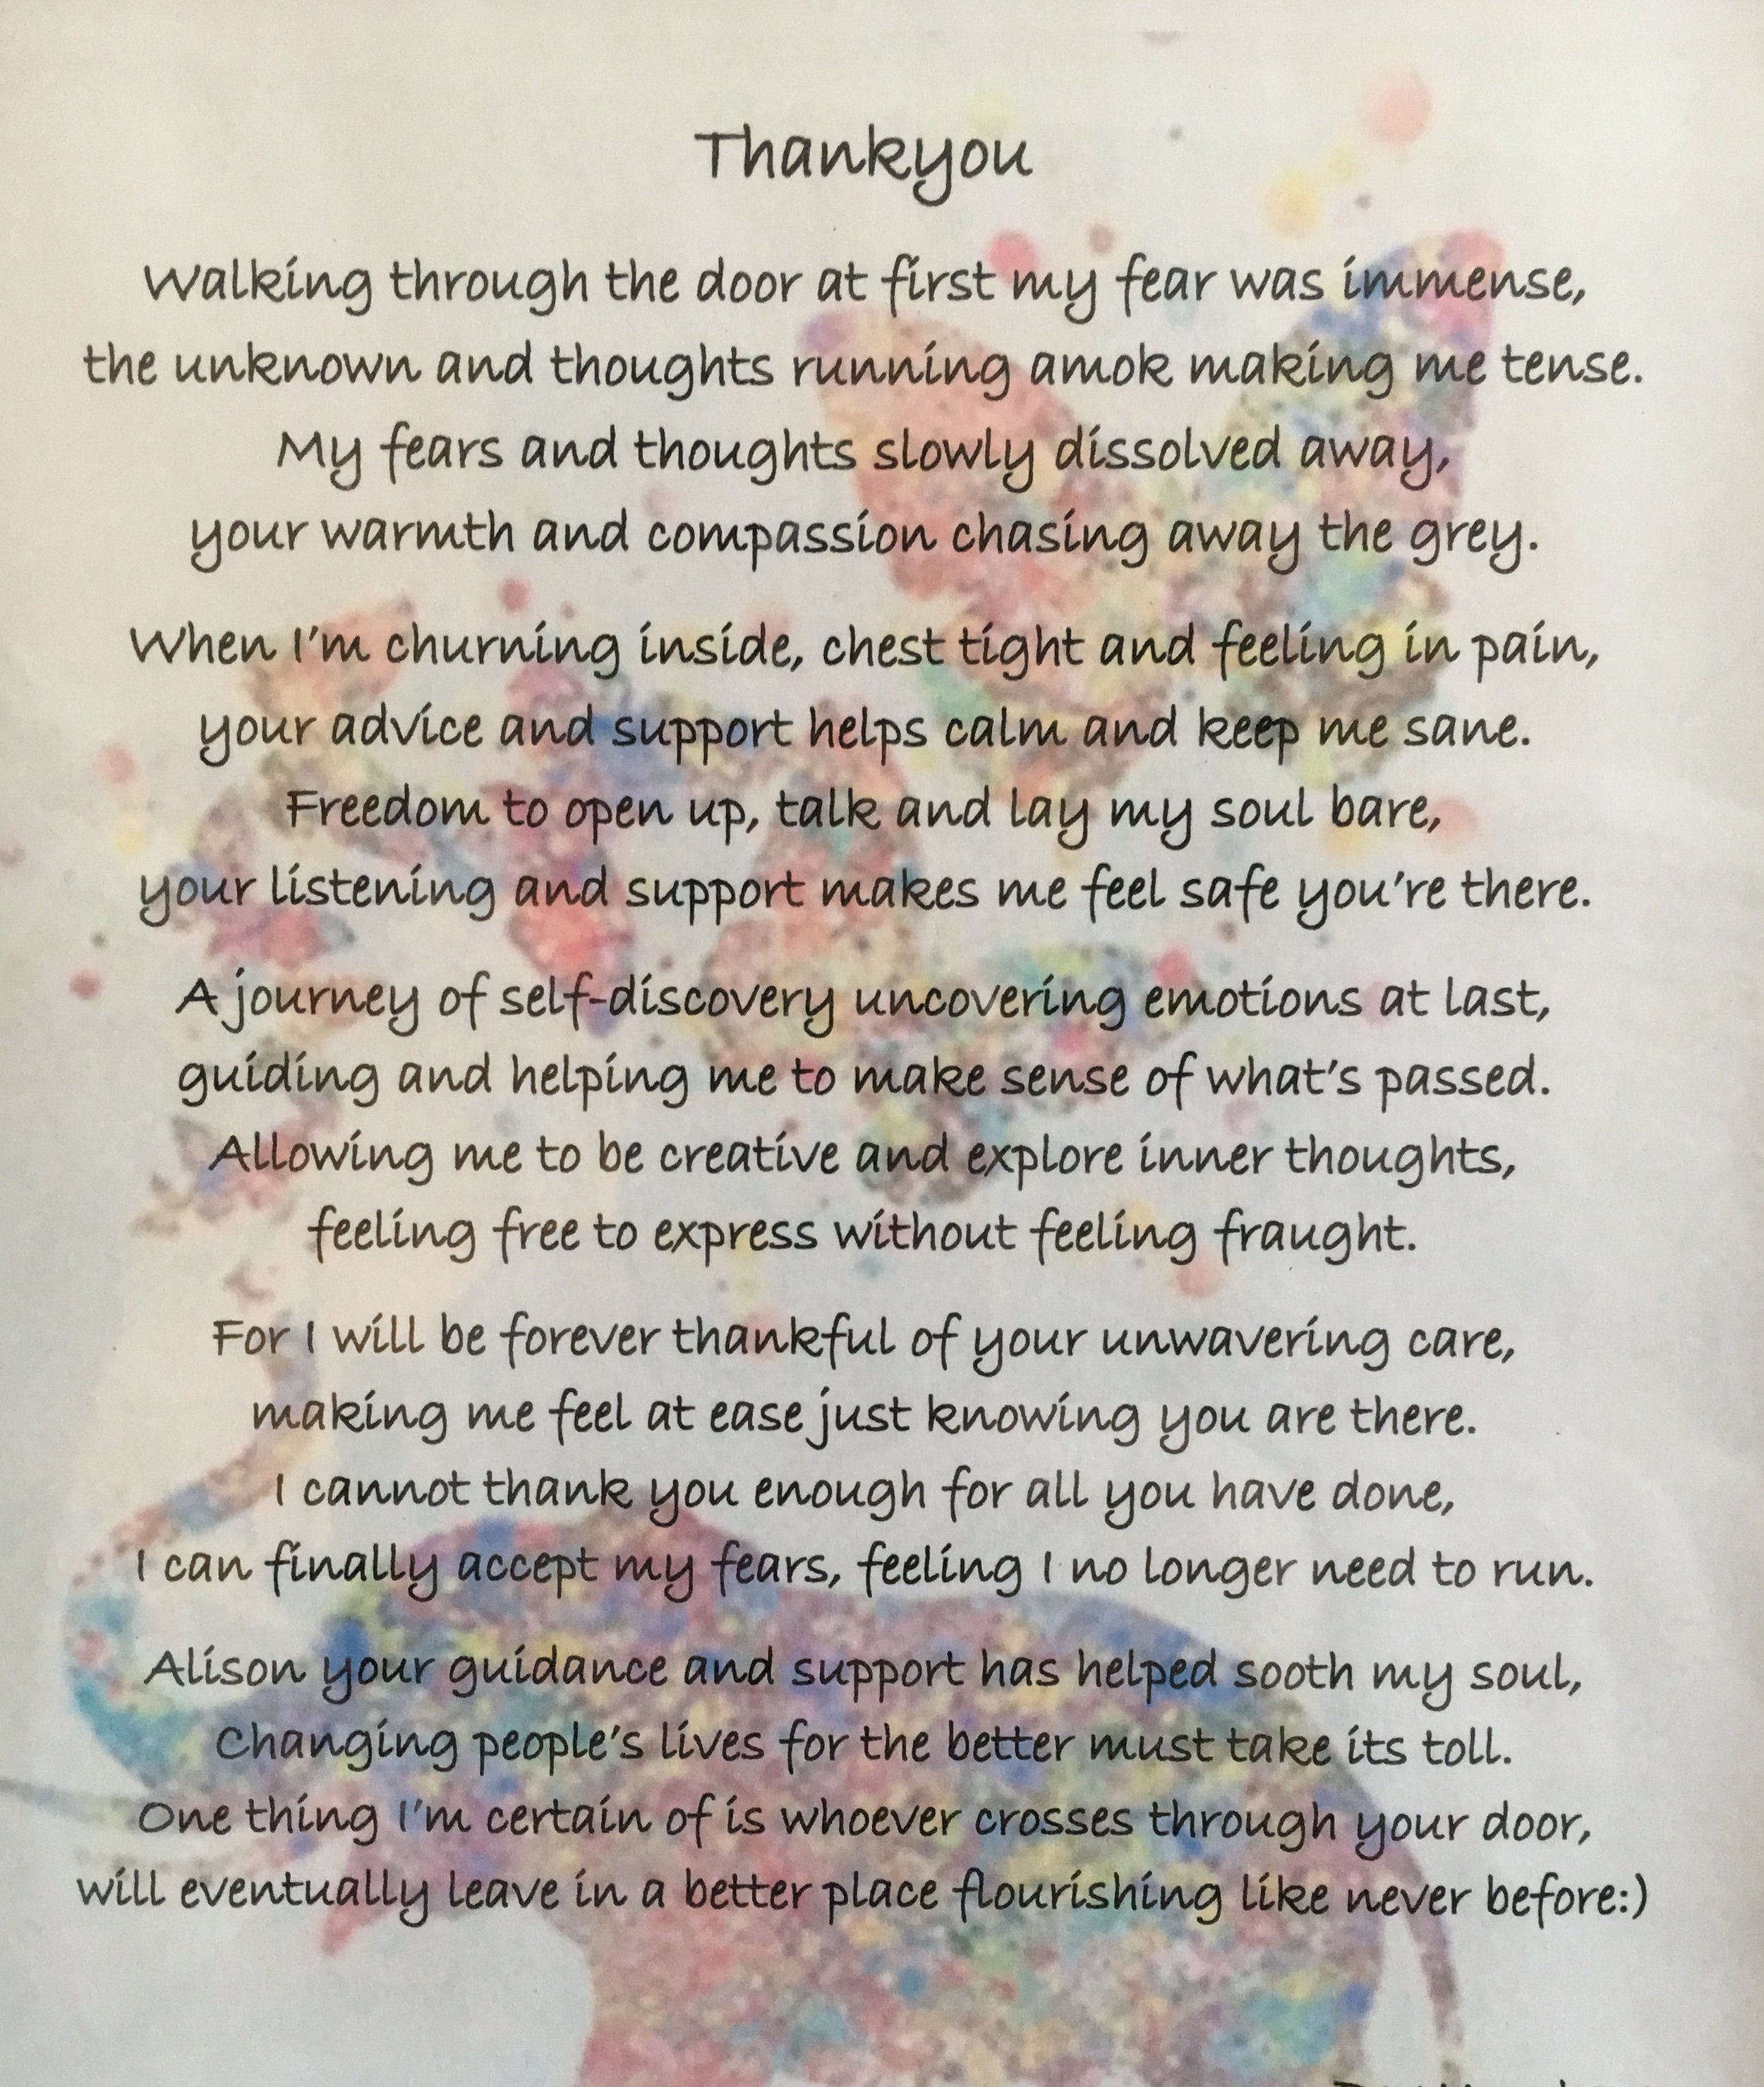 This poem was written by Bev and given to be as a gift when we finished working together.